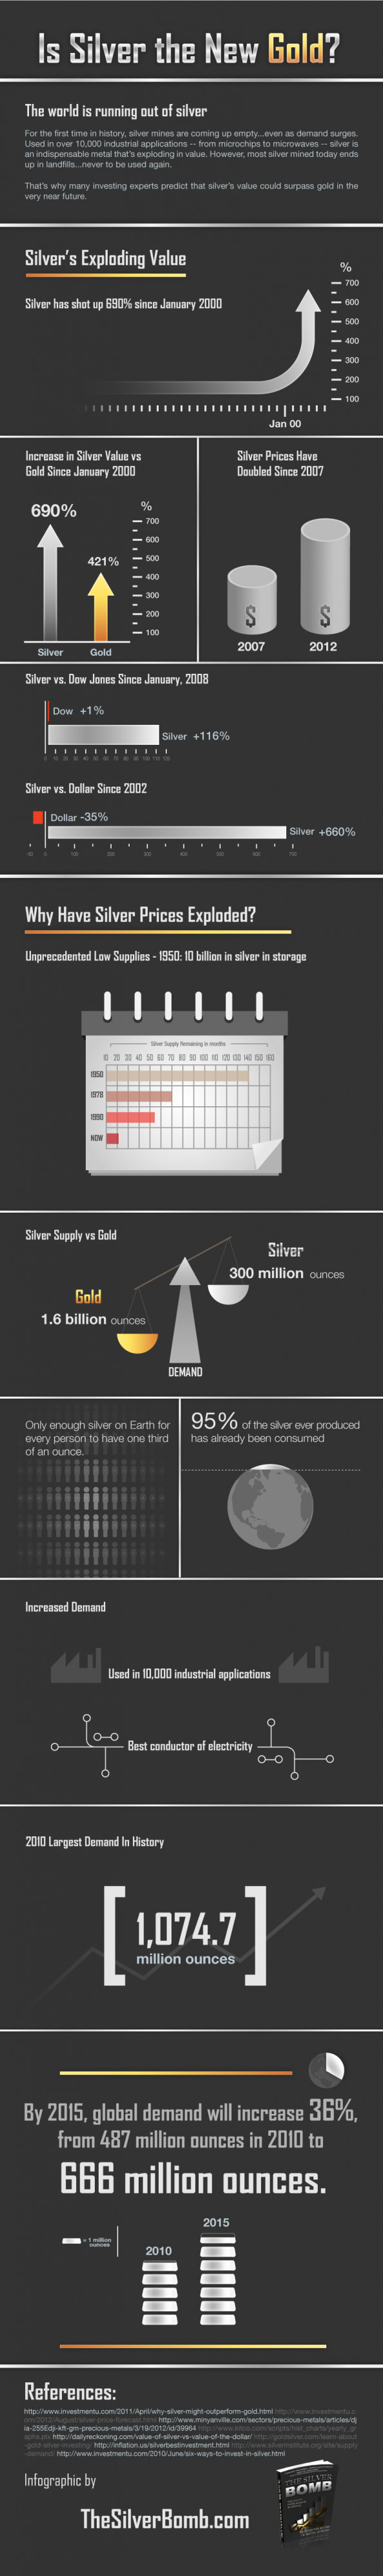 Is Silver the New Gold? Infographic